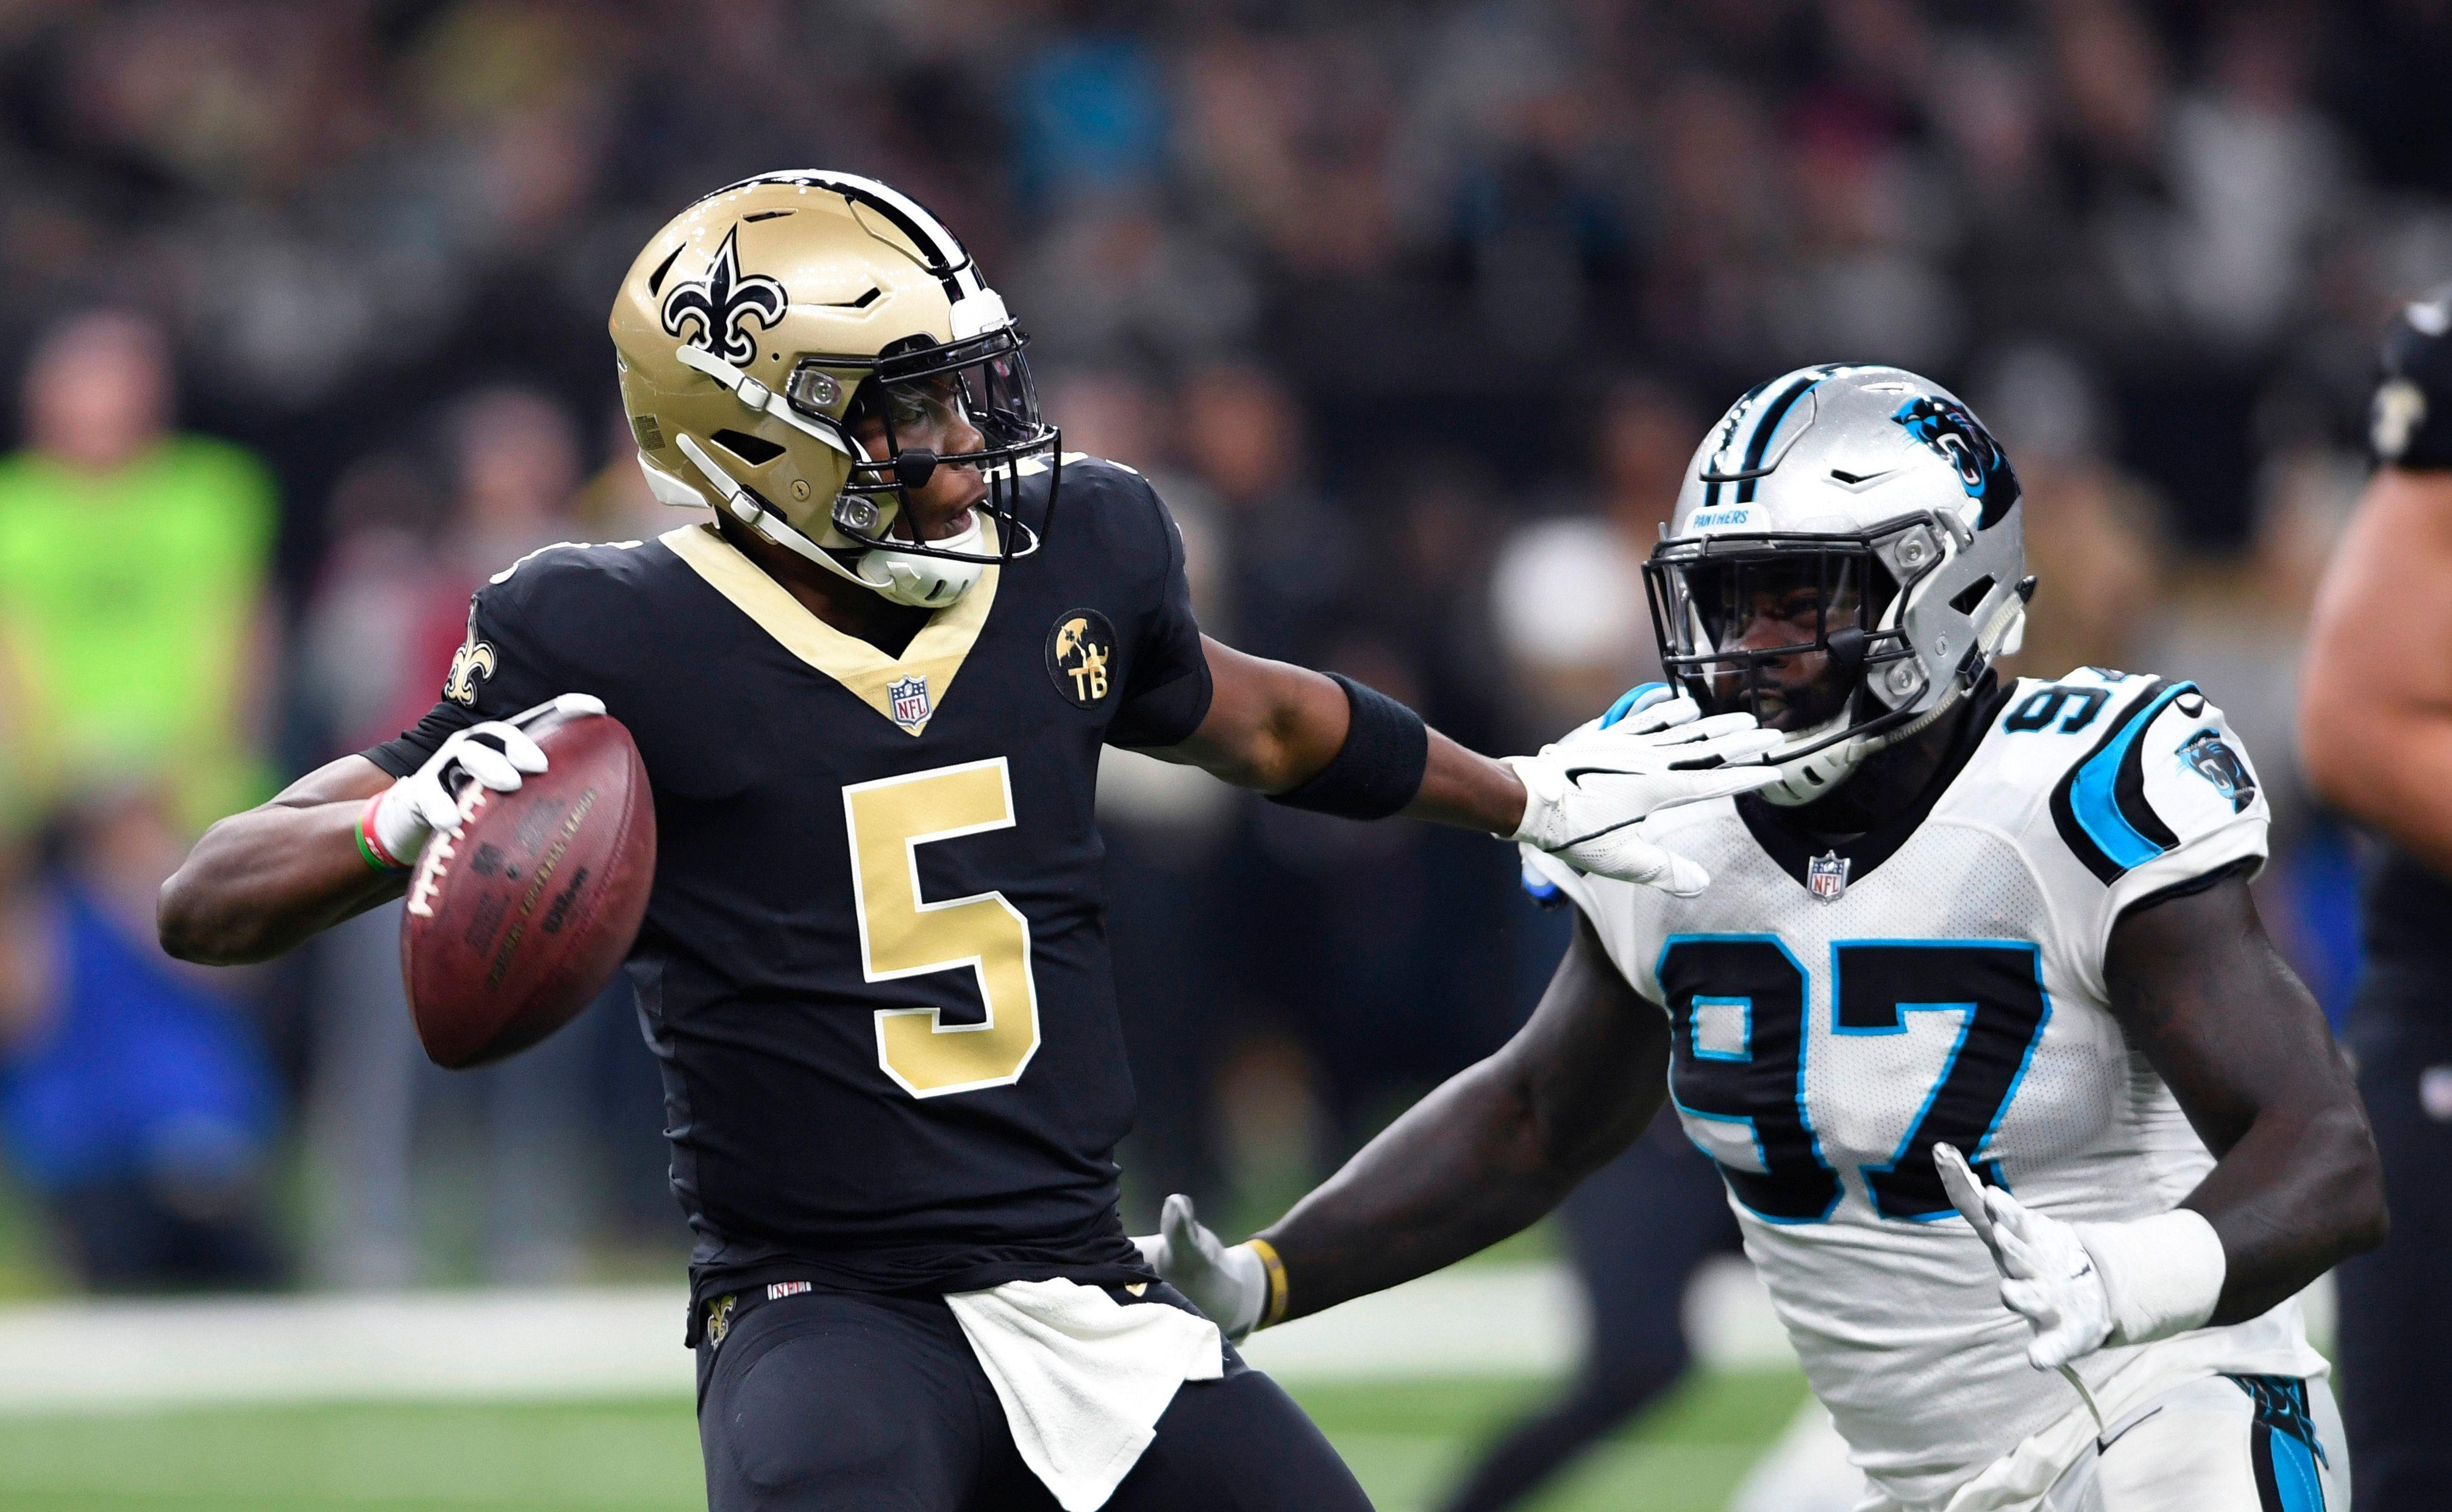 Report: Teddy Bridgewater spurns Dolphins to go back to Saints